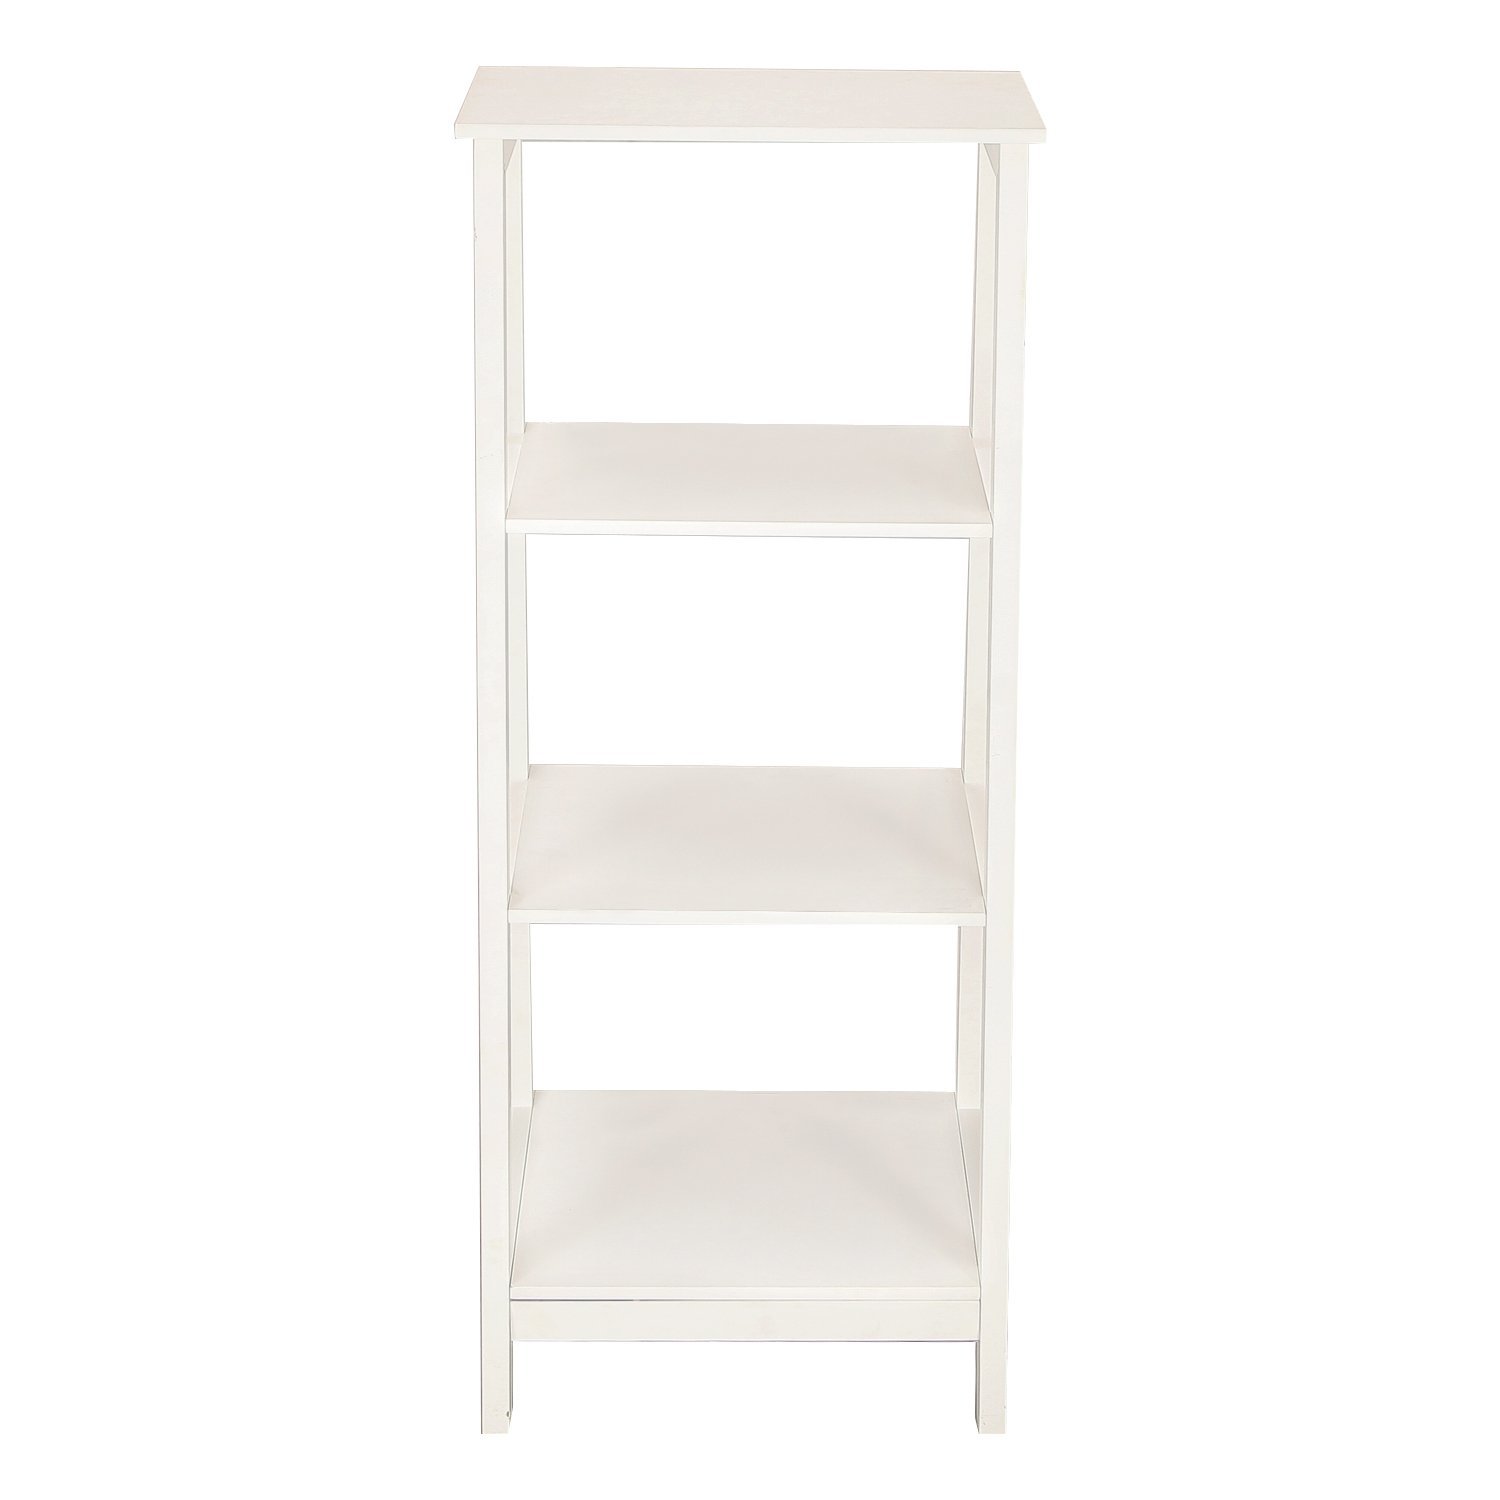 Adeco Simple Home Living Room Bed Room Bookcase/ Book Shelf (White Ivory)